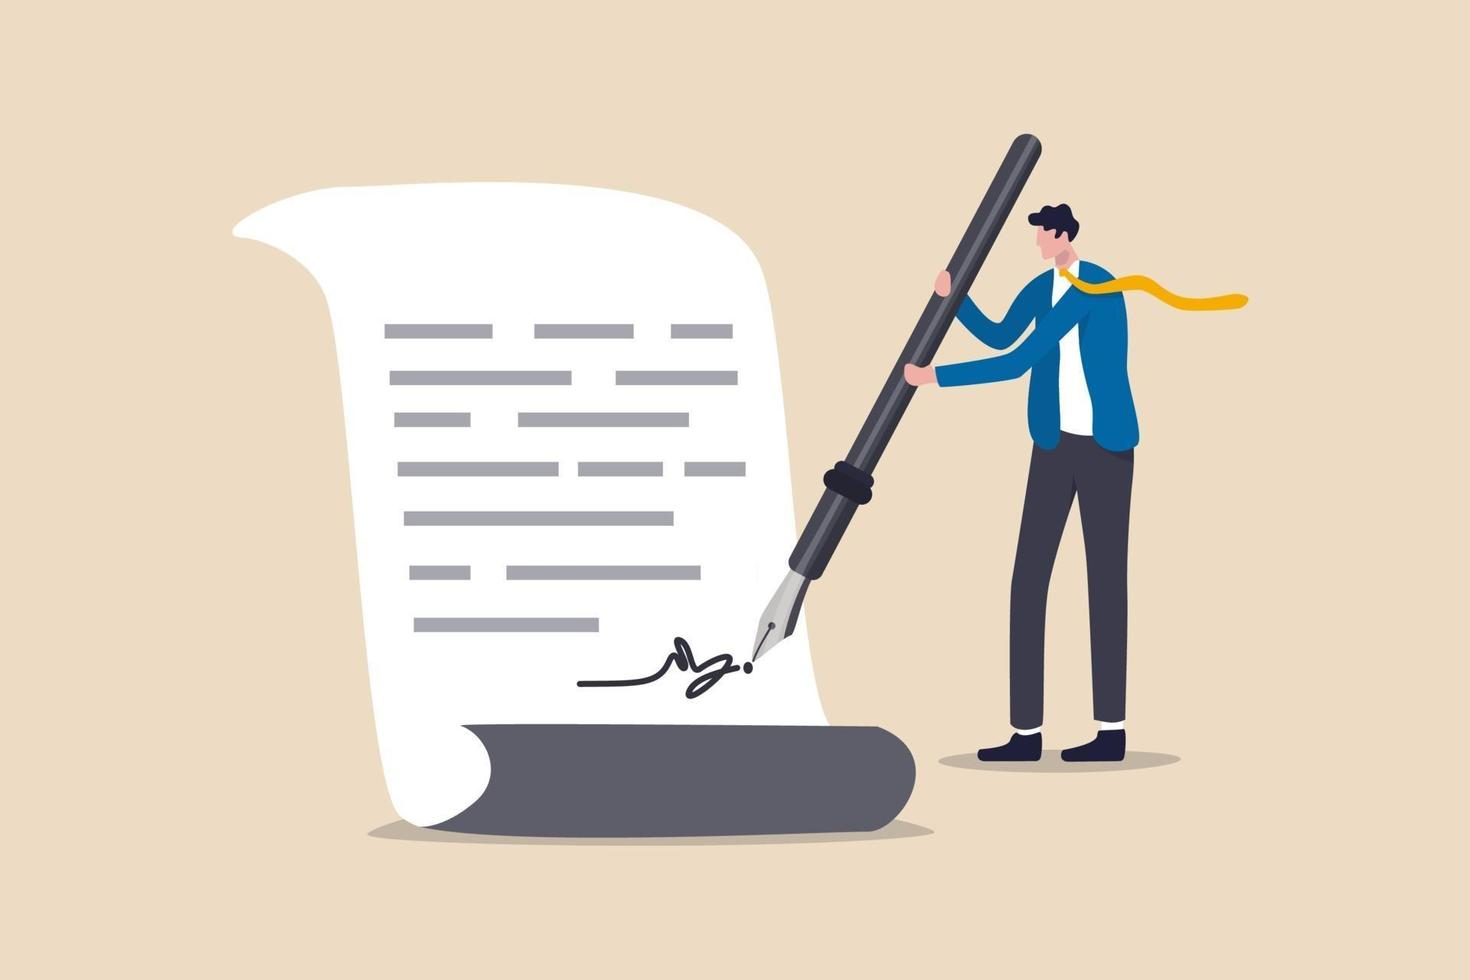 Business deal, agreement, sign contract and paperwork for banking loan, mortgage or government policy, confidence businessman leader or client using fountain pen signing his signature on paperwork. vector